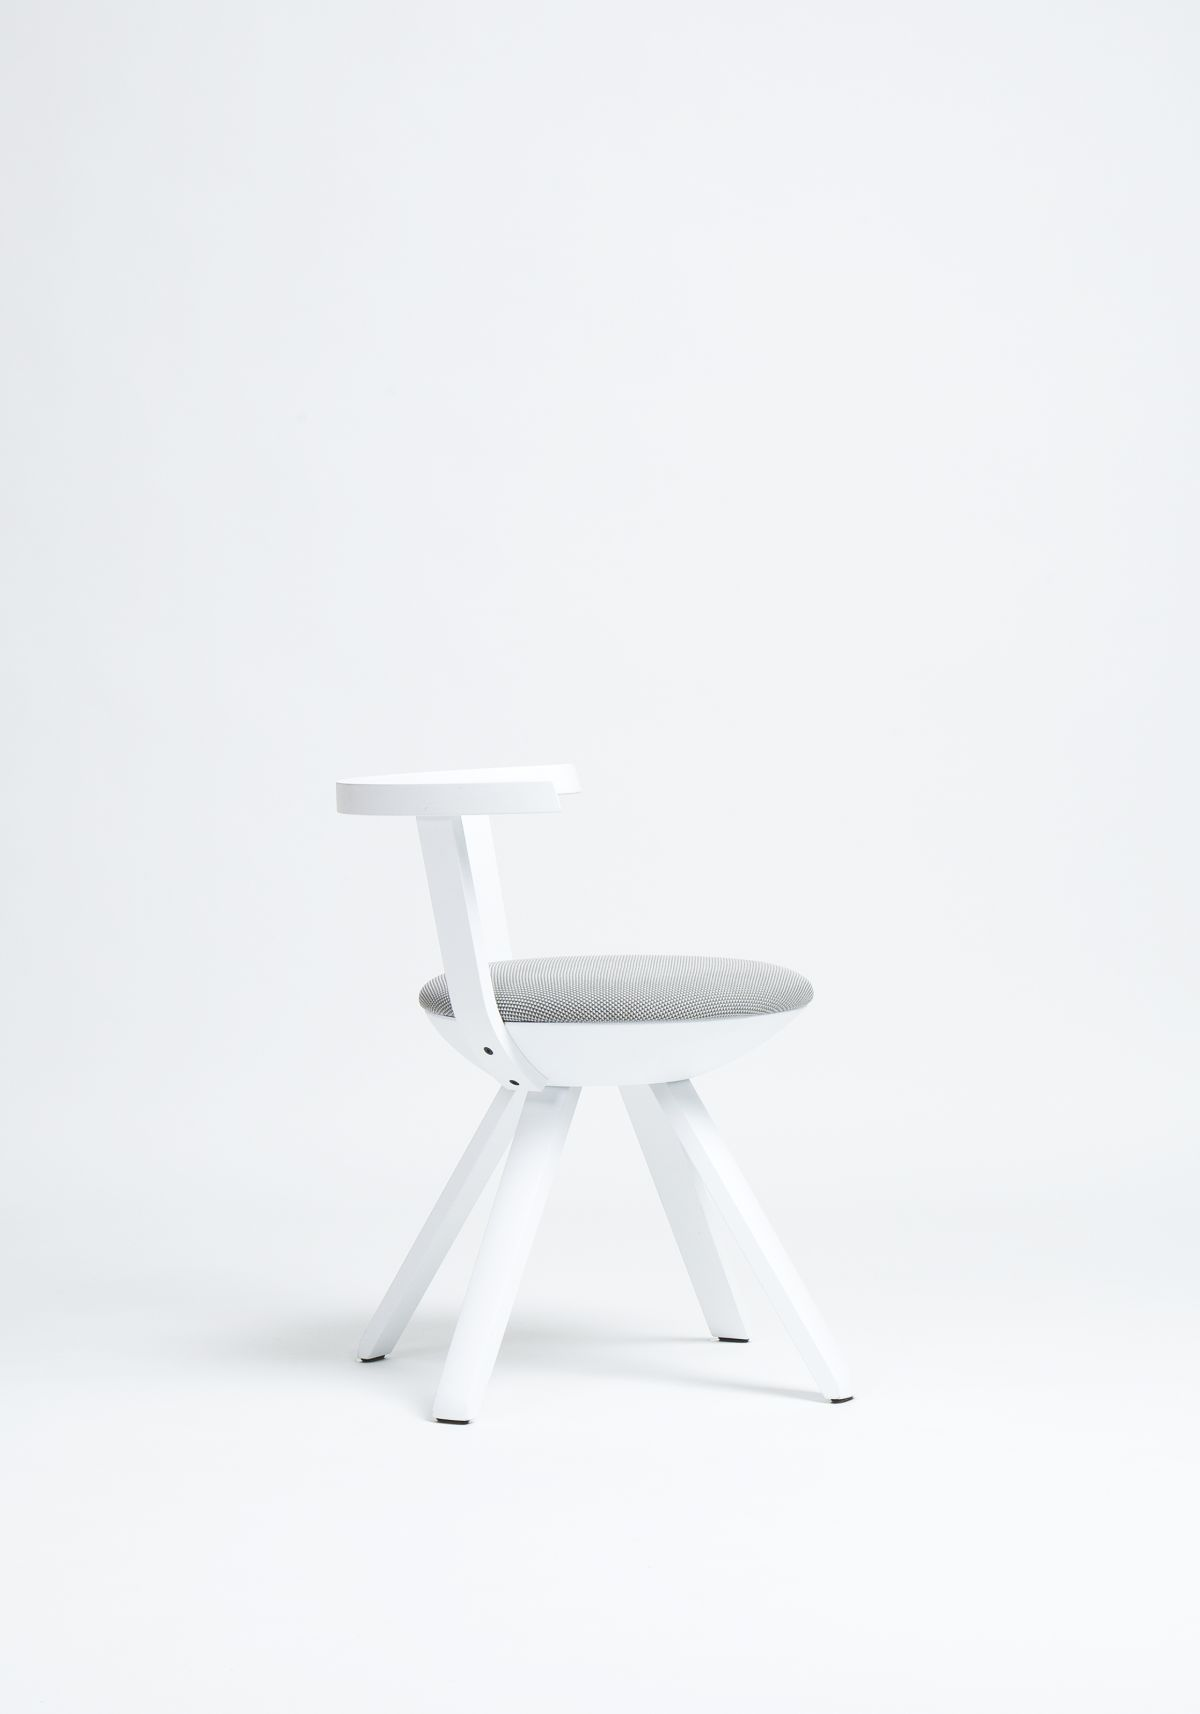 Rival-Chair-Kg001-White-Lacquer